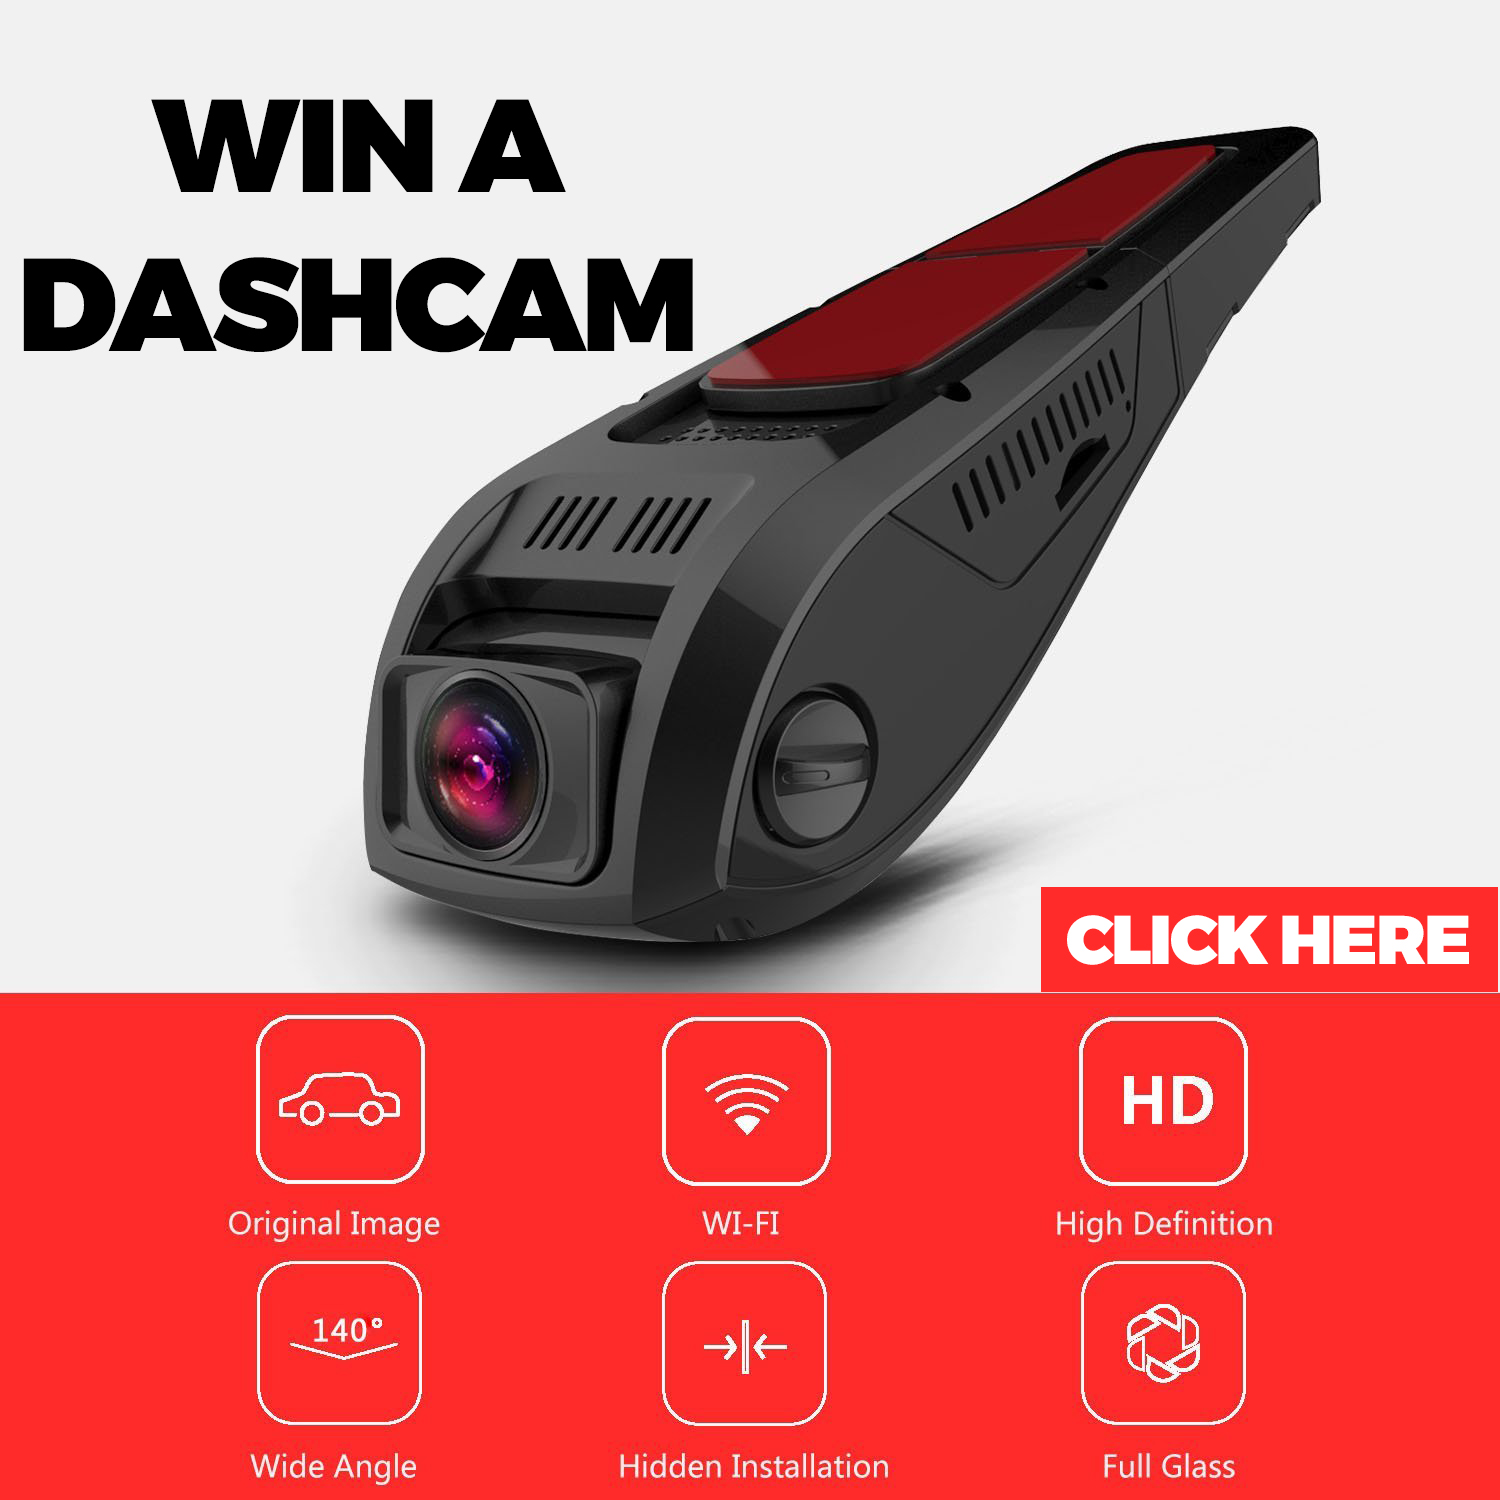 WIN A DASHCAM